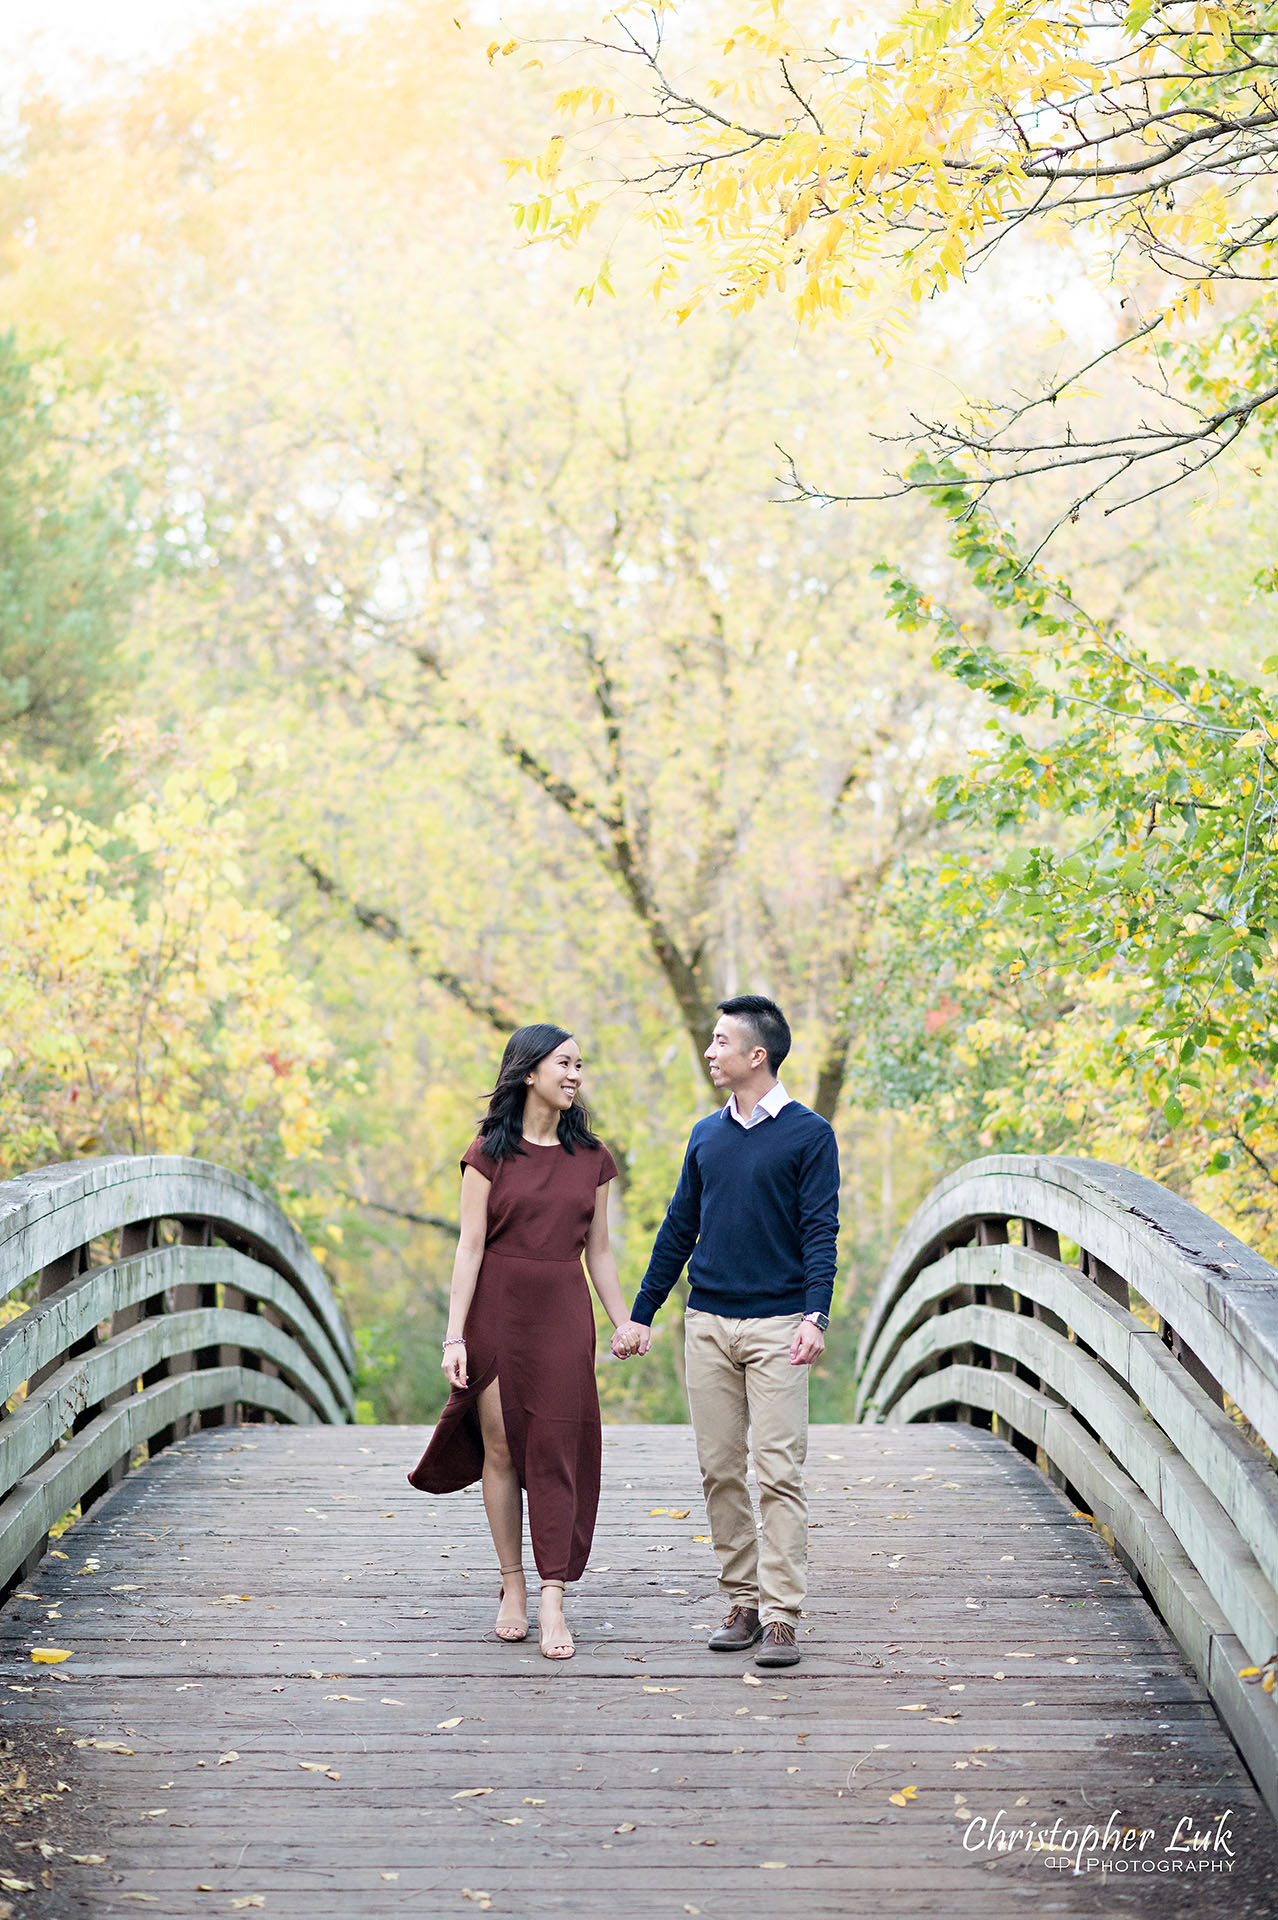 Christopher Luk Toronto Wedding Engagement Session Photographer Autumn Fall Leaves Natural Candid Photojournalistic Bride Groom Bridge Holding Hands Walking Together